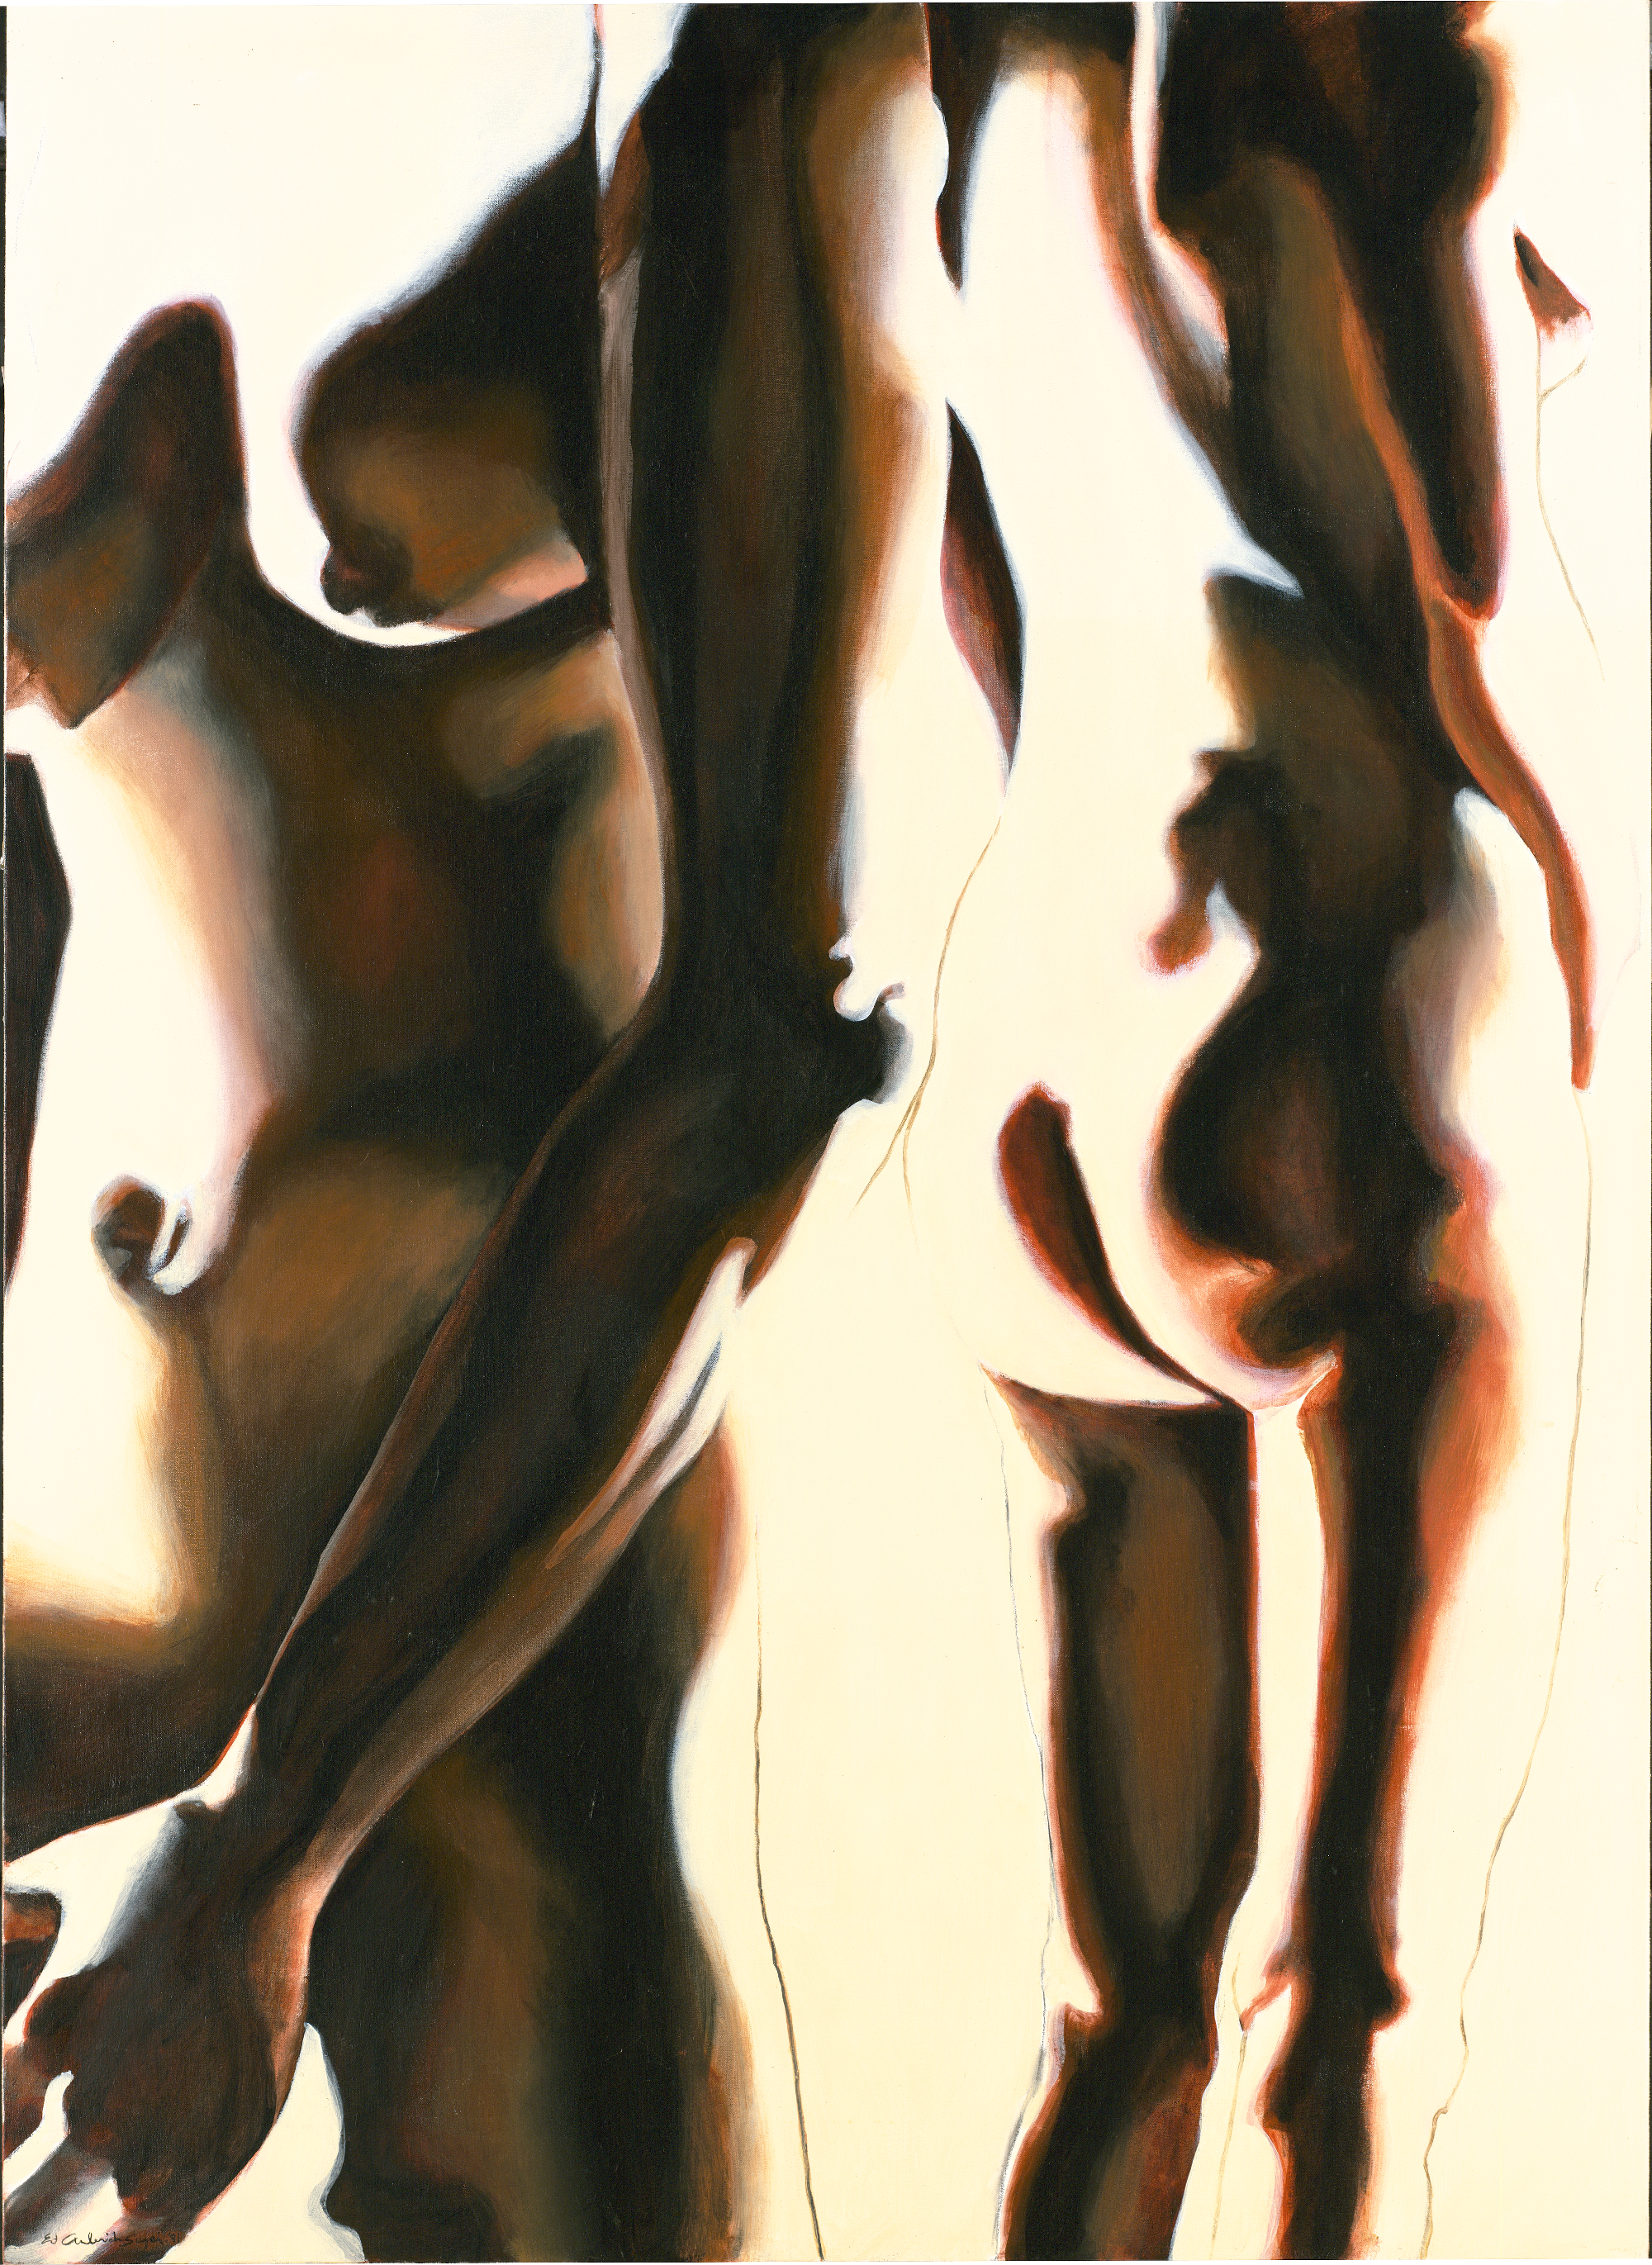 Figures: Repose Ascending Figures Study #3, 1991